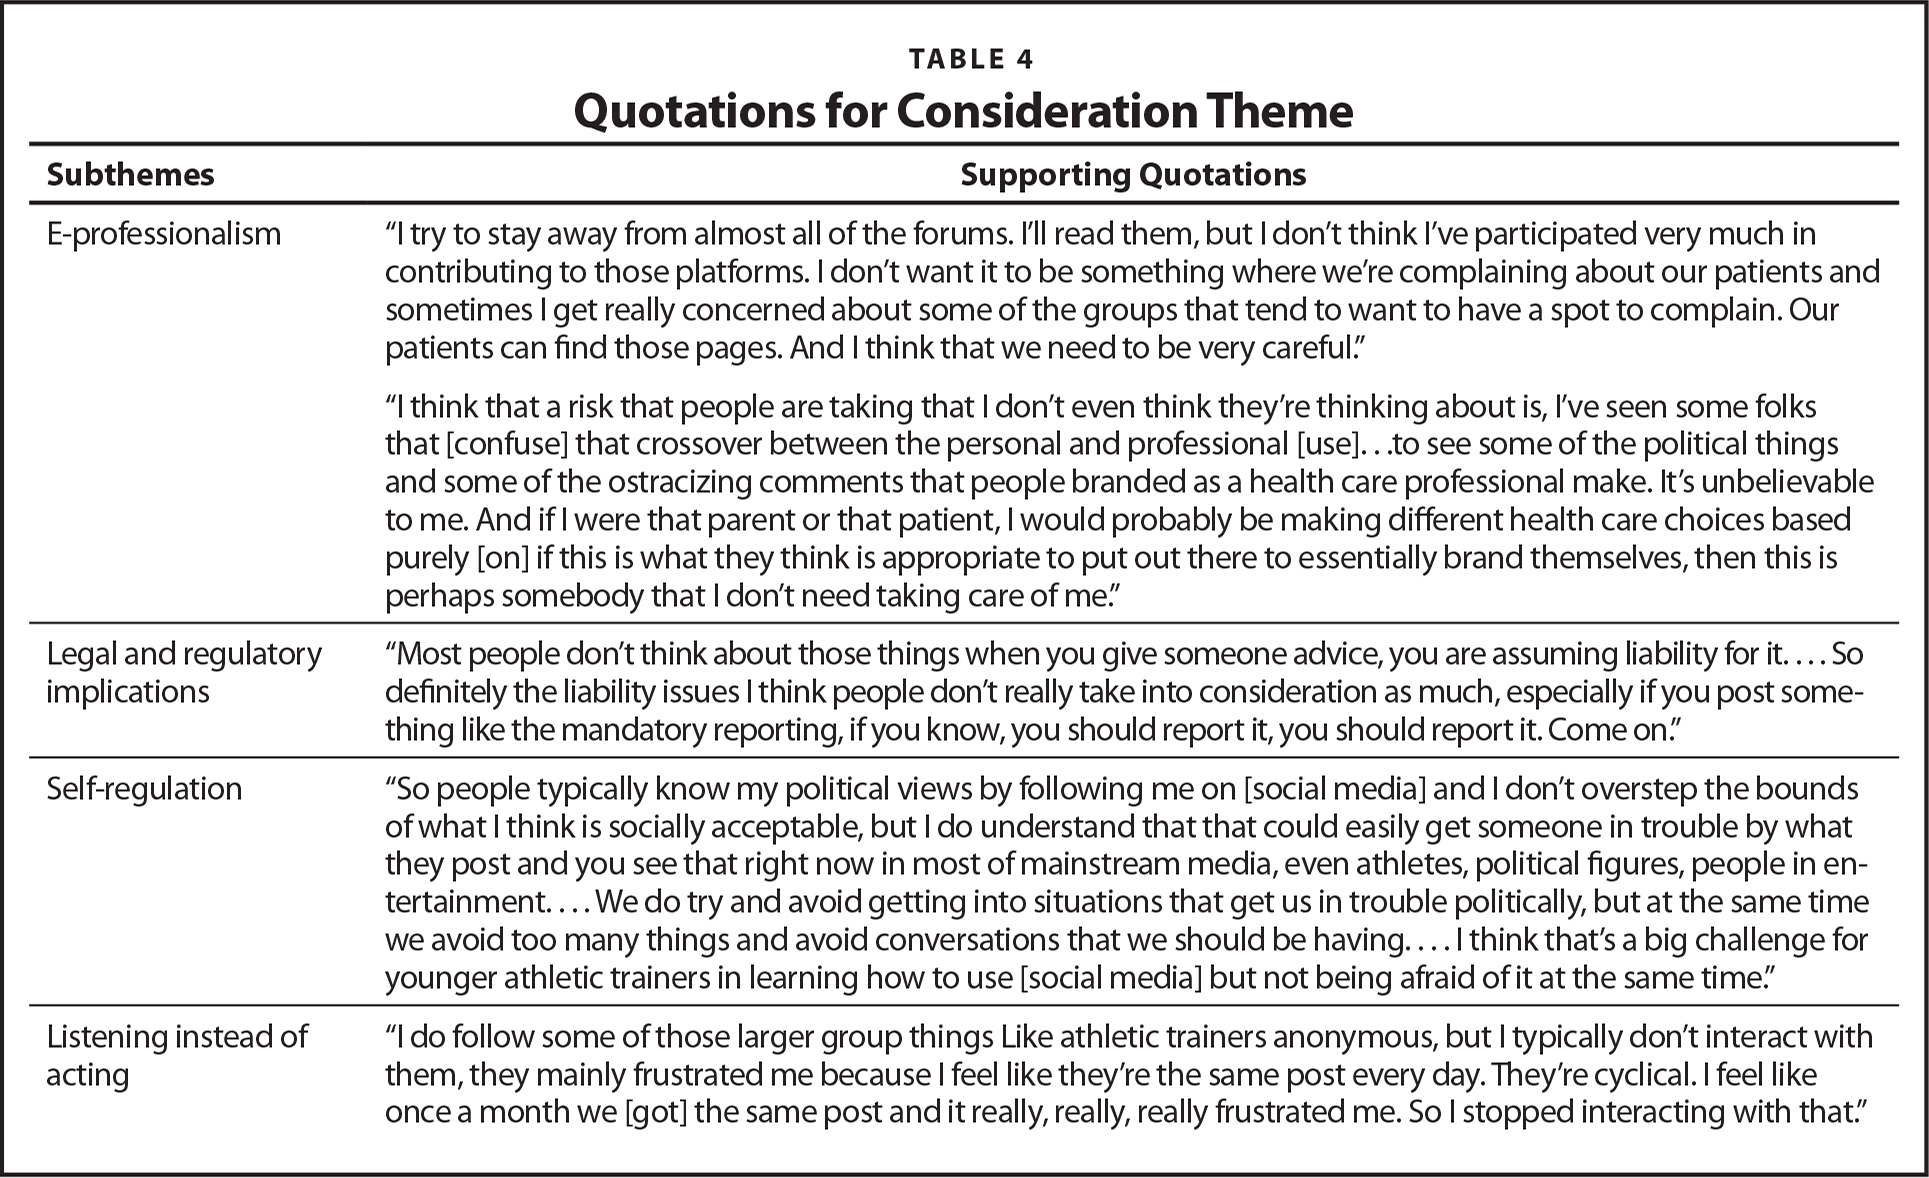 Quotations for Consideration Theme